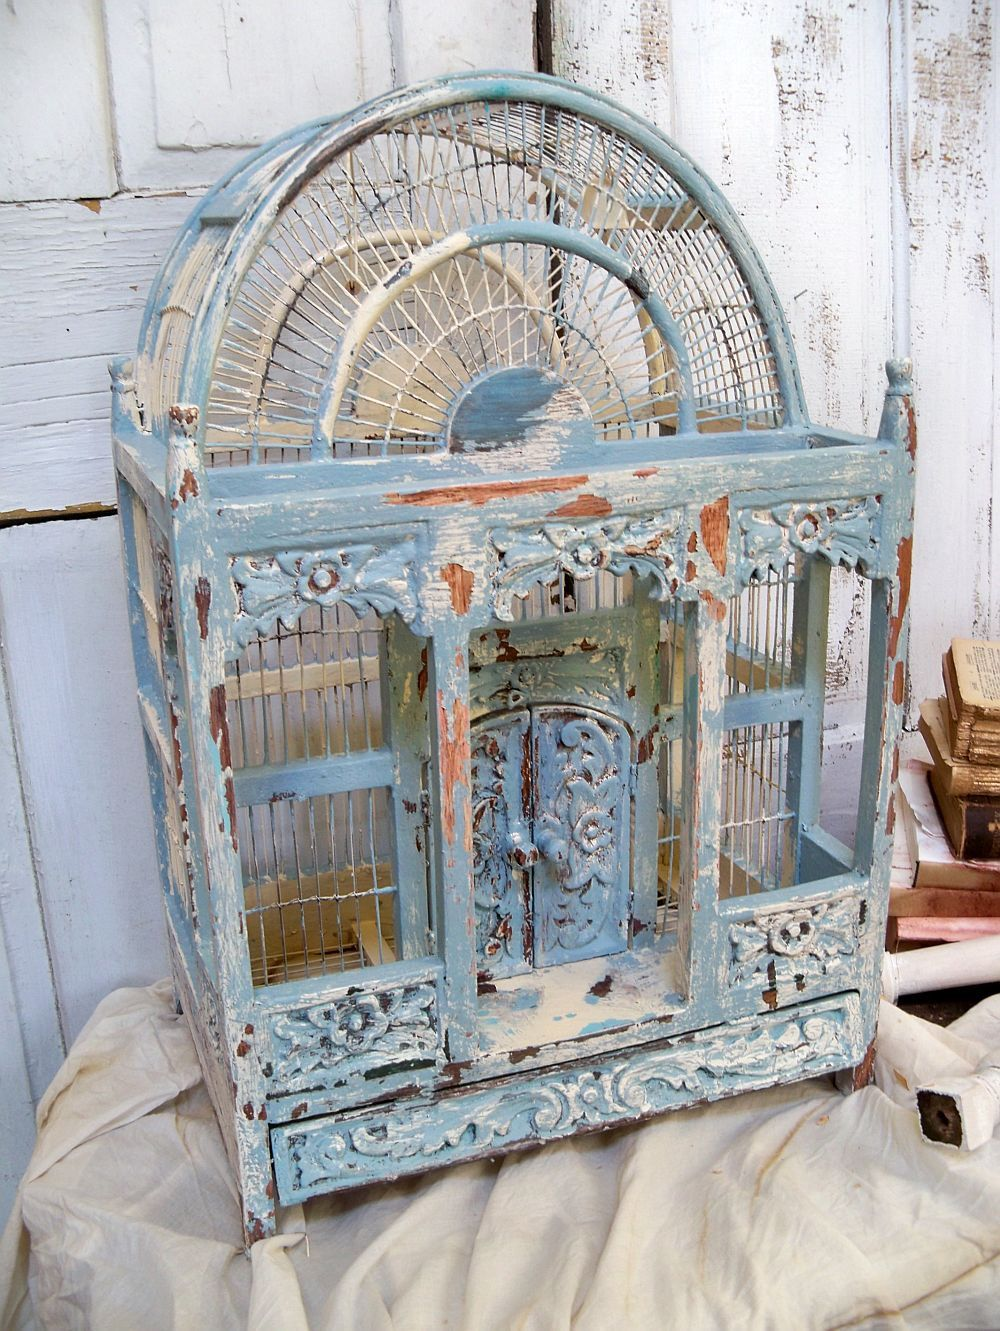 Large Birdcage Wooden Hand Painted Carved Shabby Chic Decor Distressed Wood Farmhouse Decoration Anita Spero 275 00 Via Etsy